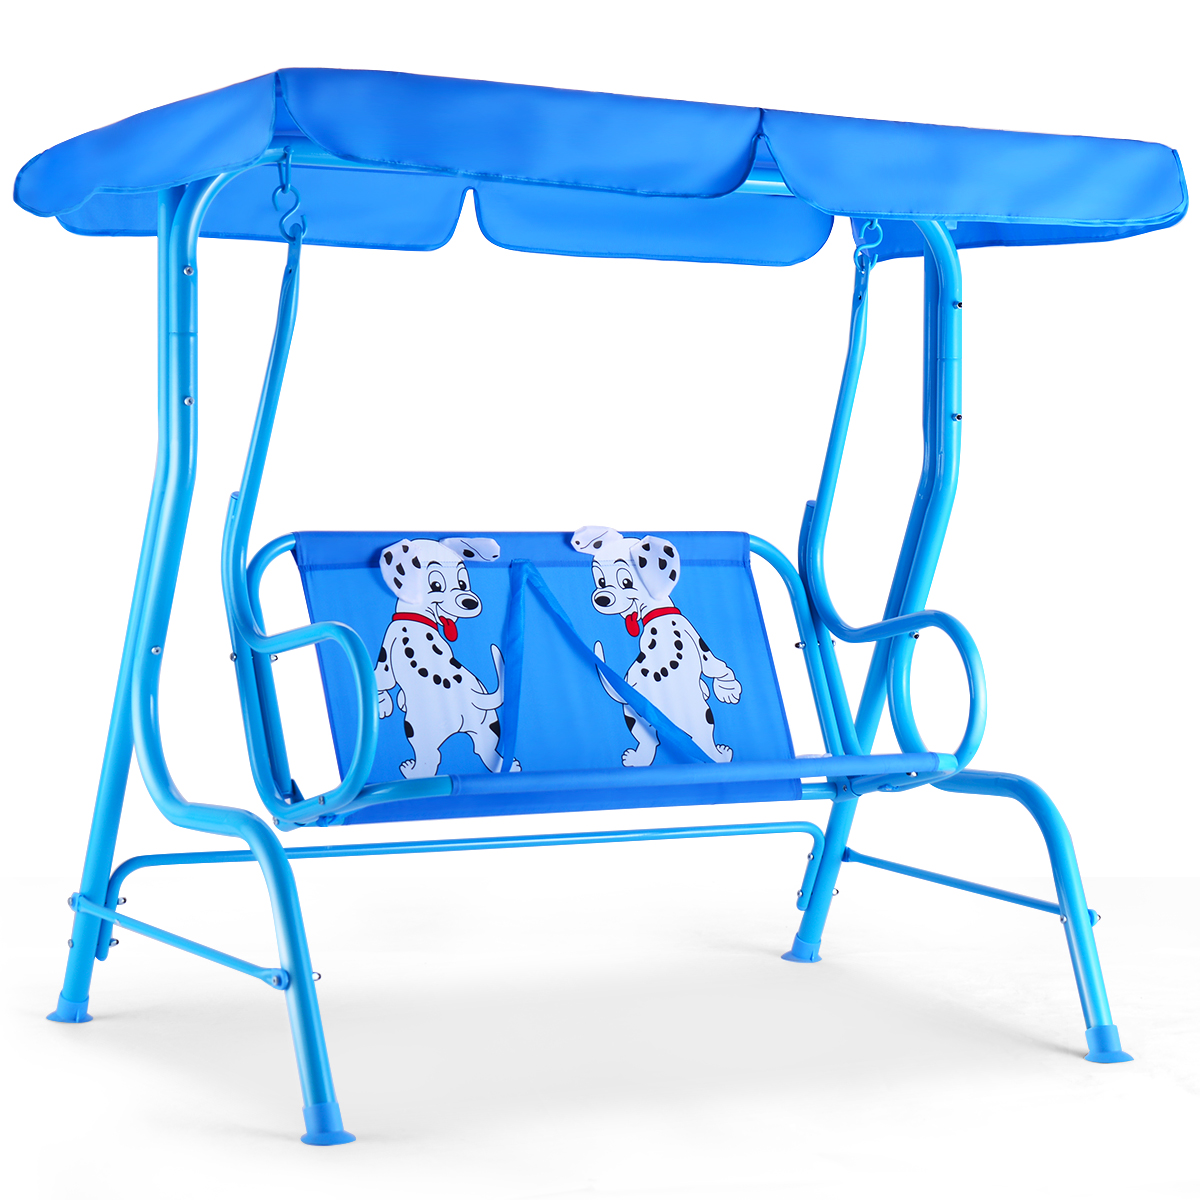 Costway Kids Patio Swing Chair Children Porch Bench Canopy 2 Person Yard Furniture Blue